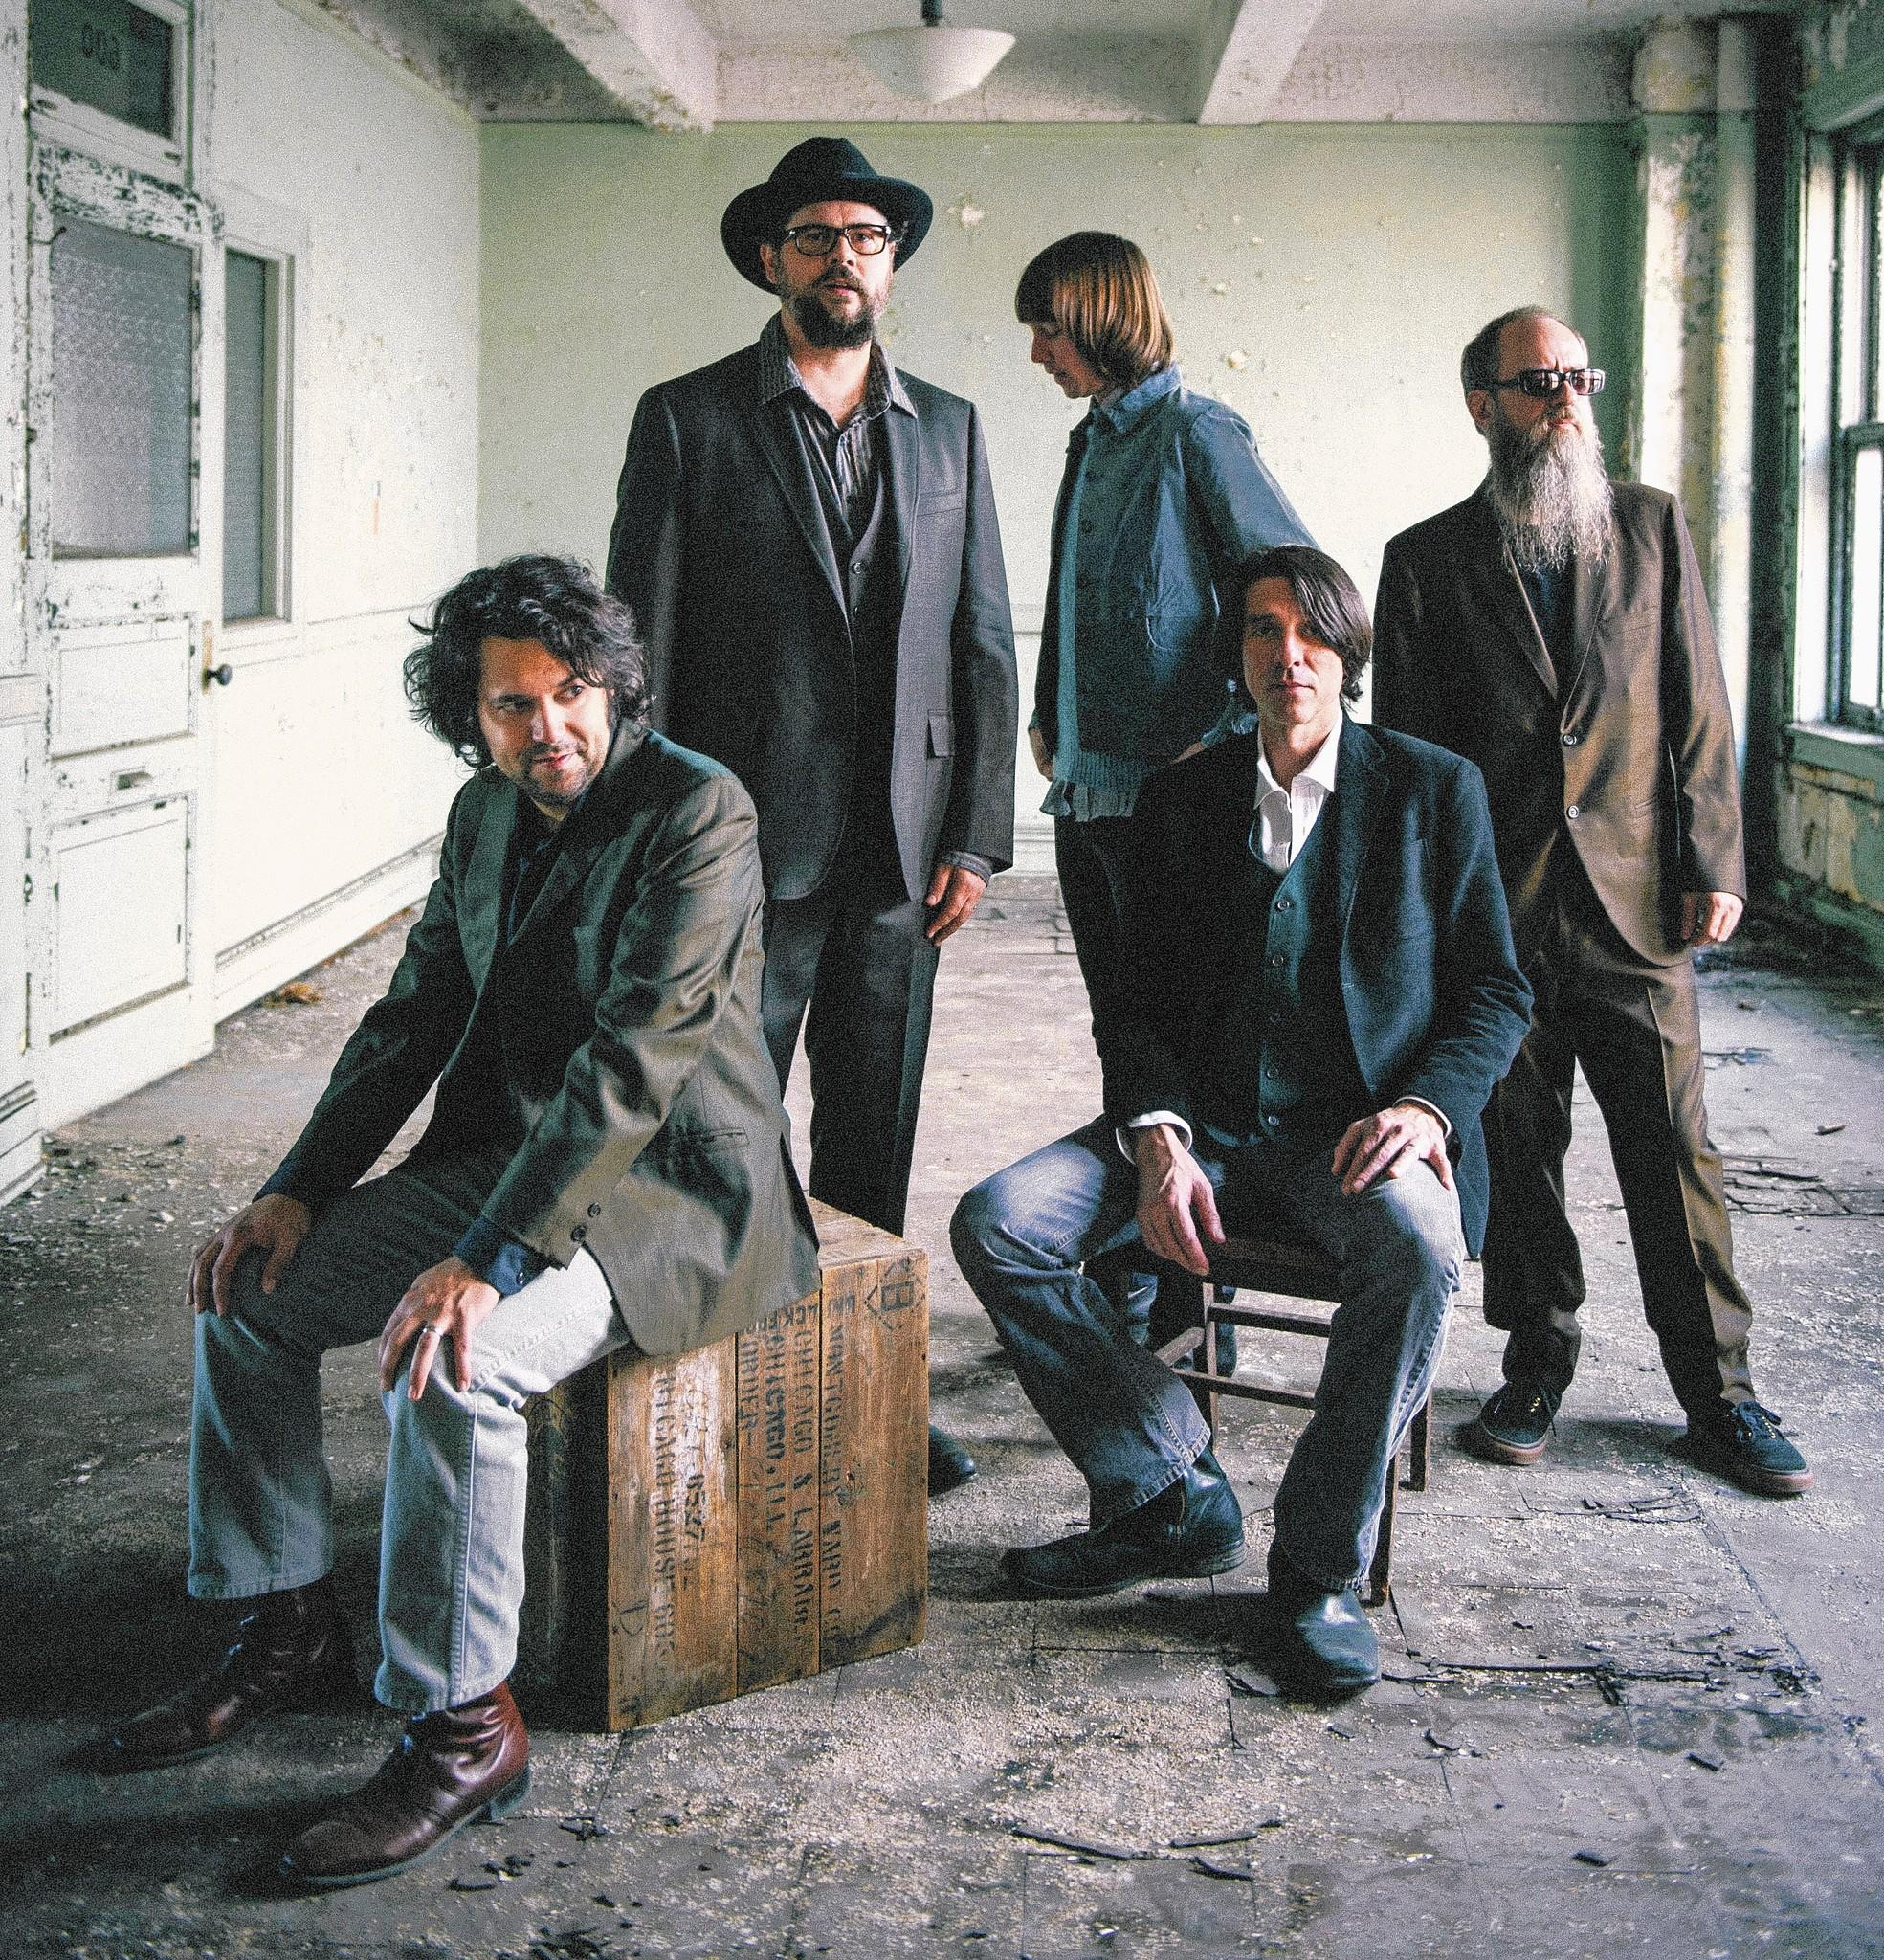 Drive-By Truckers, left to right: Jay Gonzalez, Patterson Hood, Matt Patton, Mike Cooley, Brad Morgan.